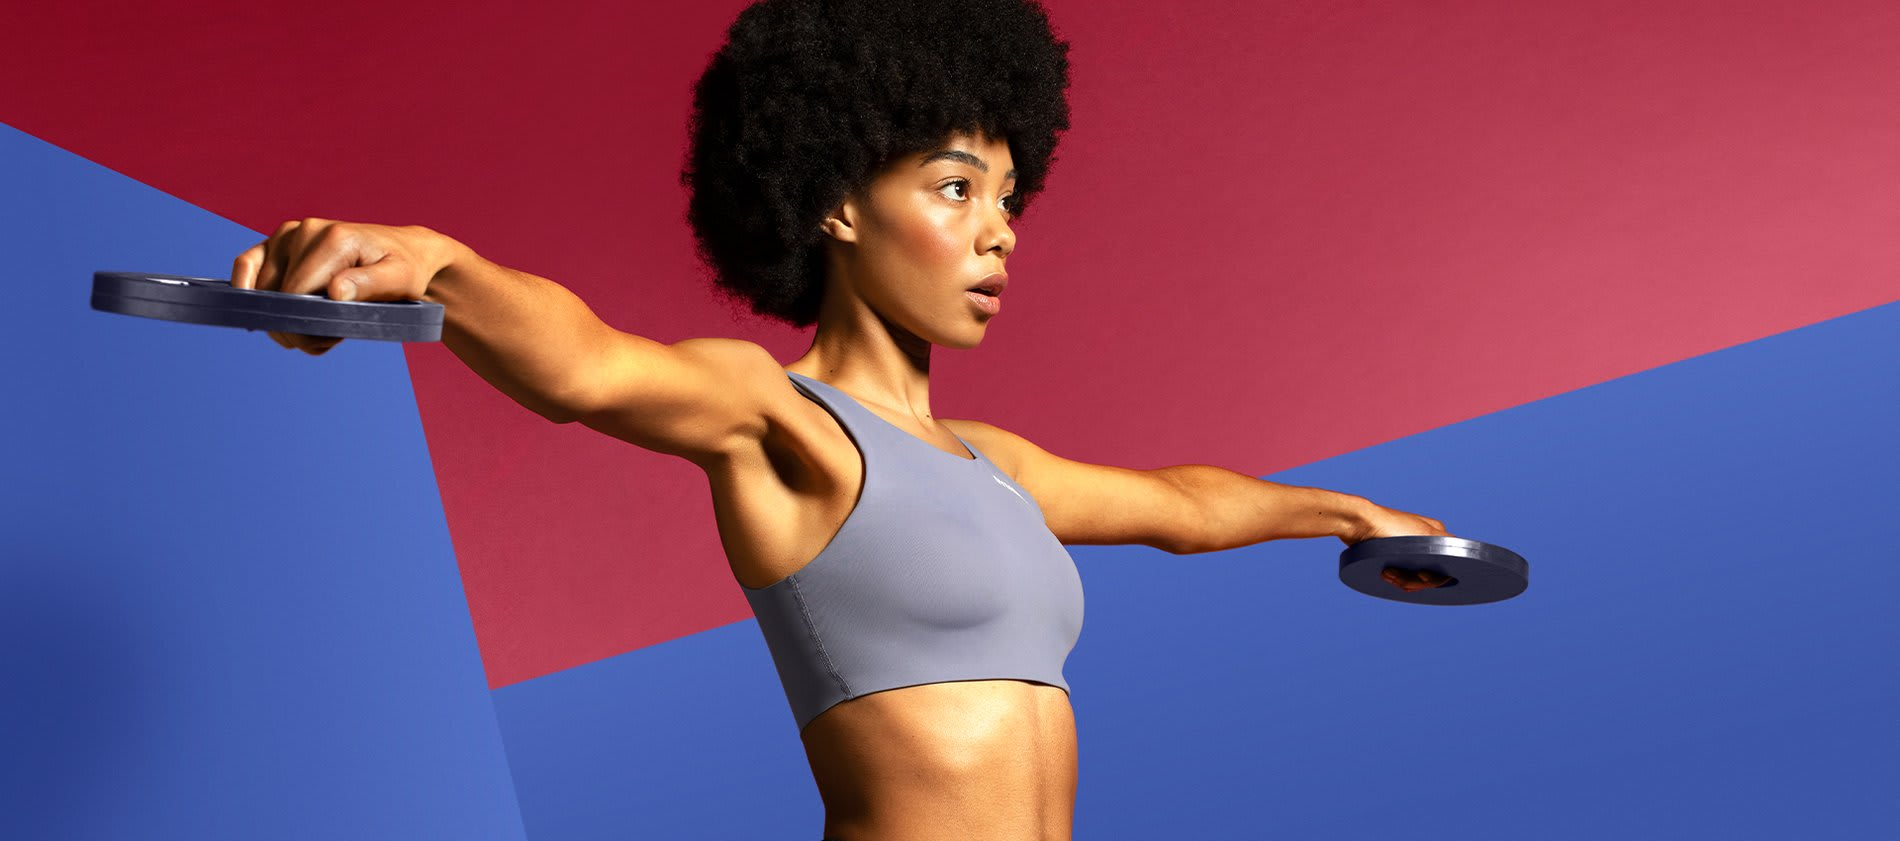 Model wearing blue Euphoria sports bra stretching her arms out to the side holding circular weights against a blue and red background.